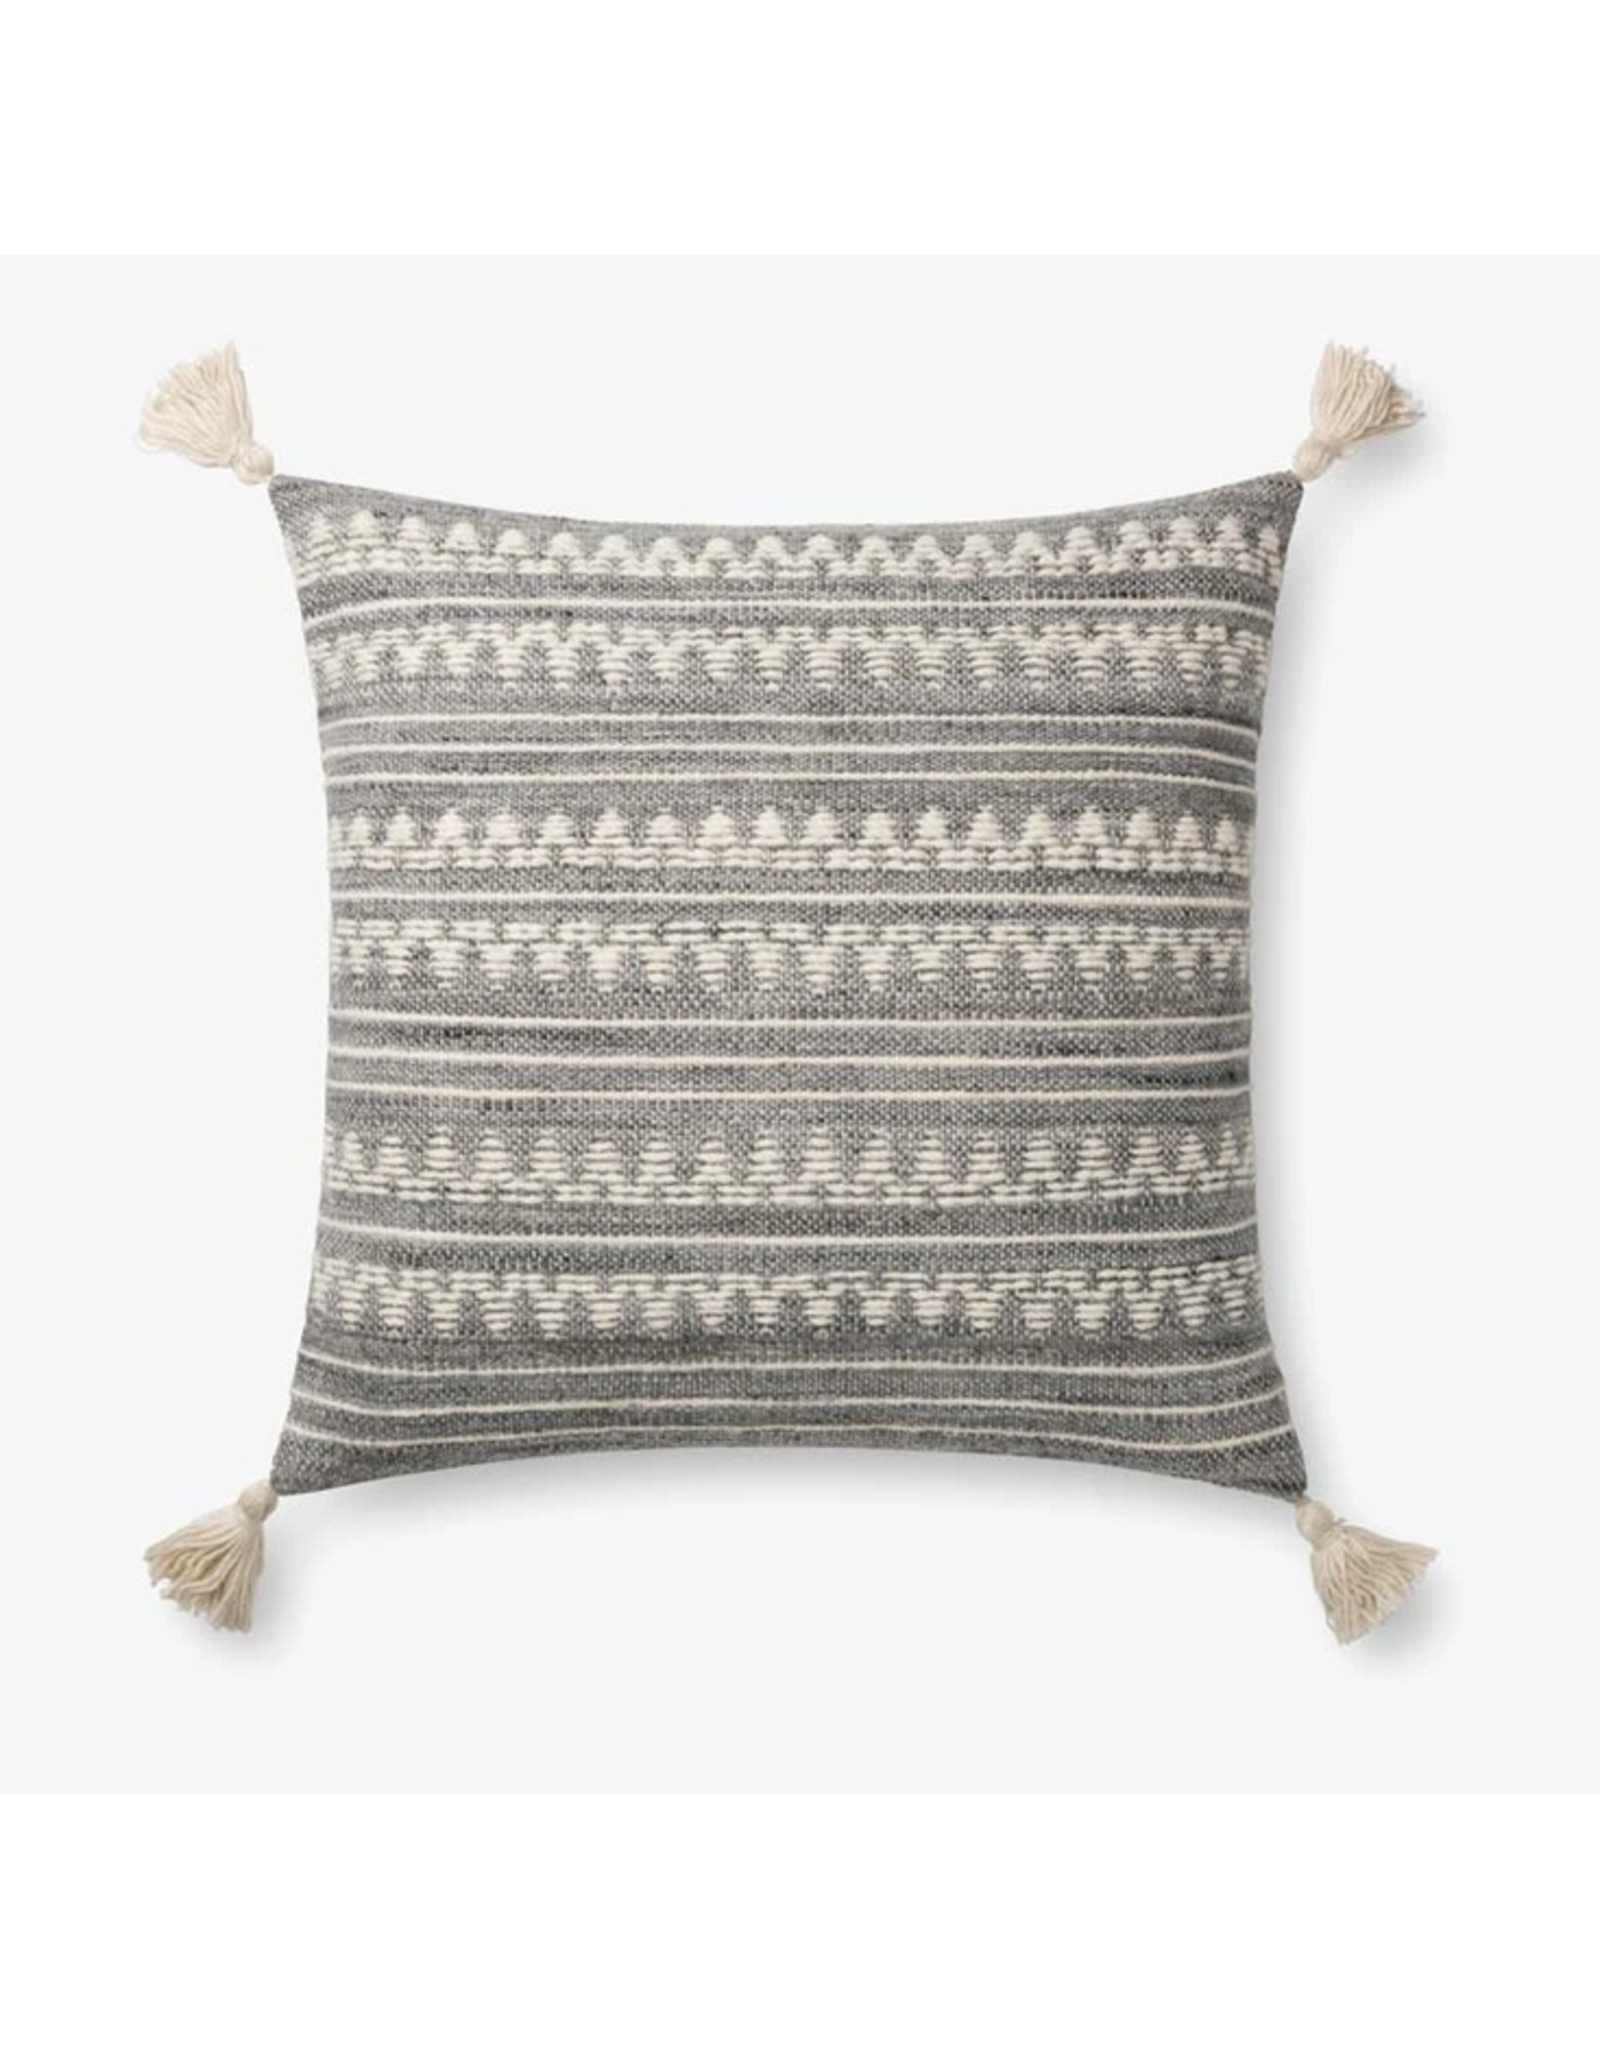 22x22 Grey/Ivory Zig Zag Pillow